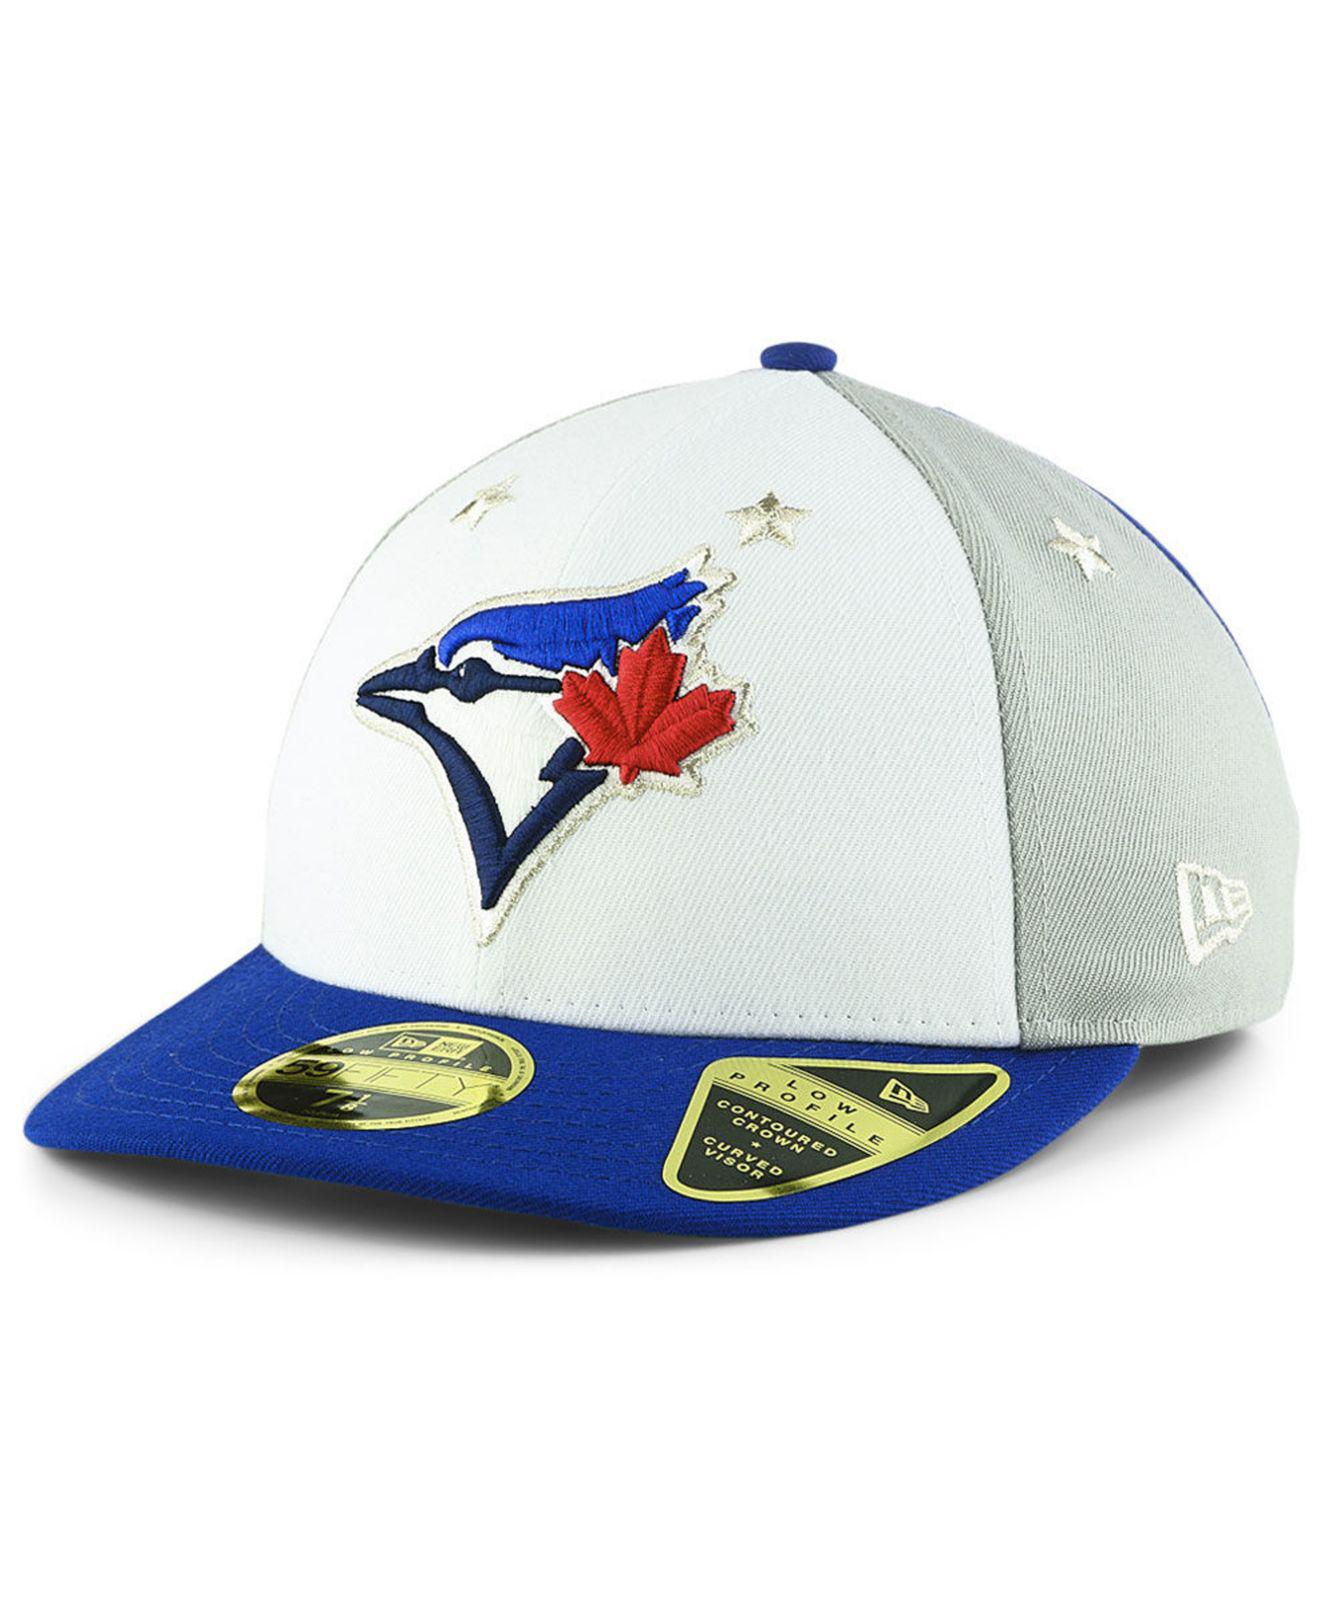 ec9977003fc Lyst - KTZ Toronto Blue Jays All Star Game Patch Low Profile 59fifty ...